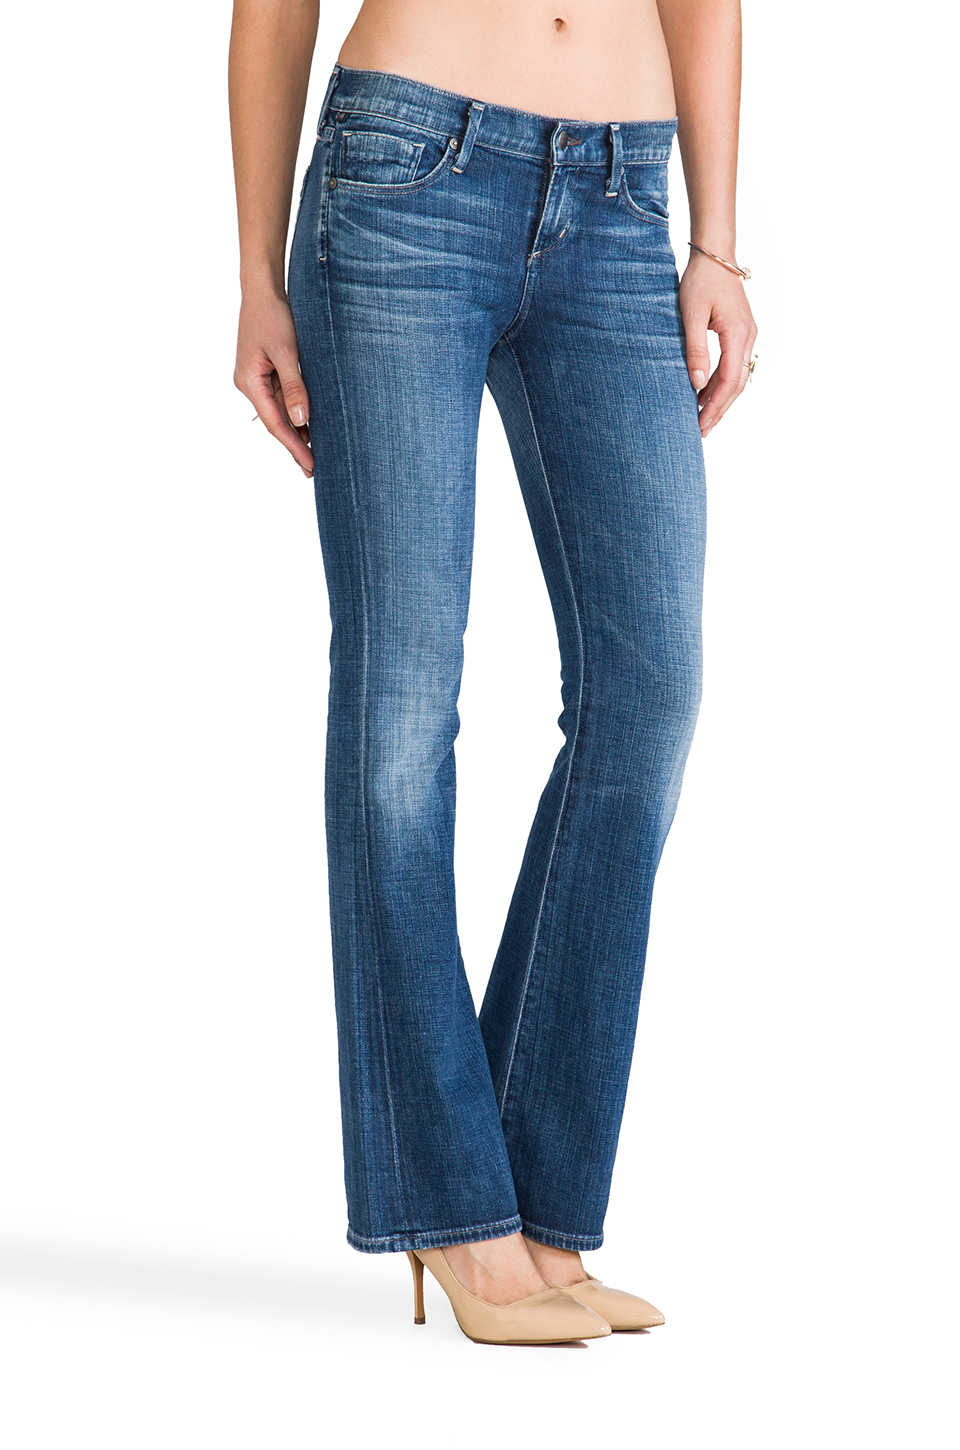 Citizens of Humanity Dita Petite Bootcut in Wedgewood